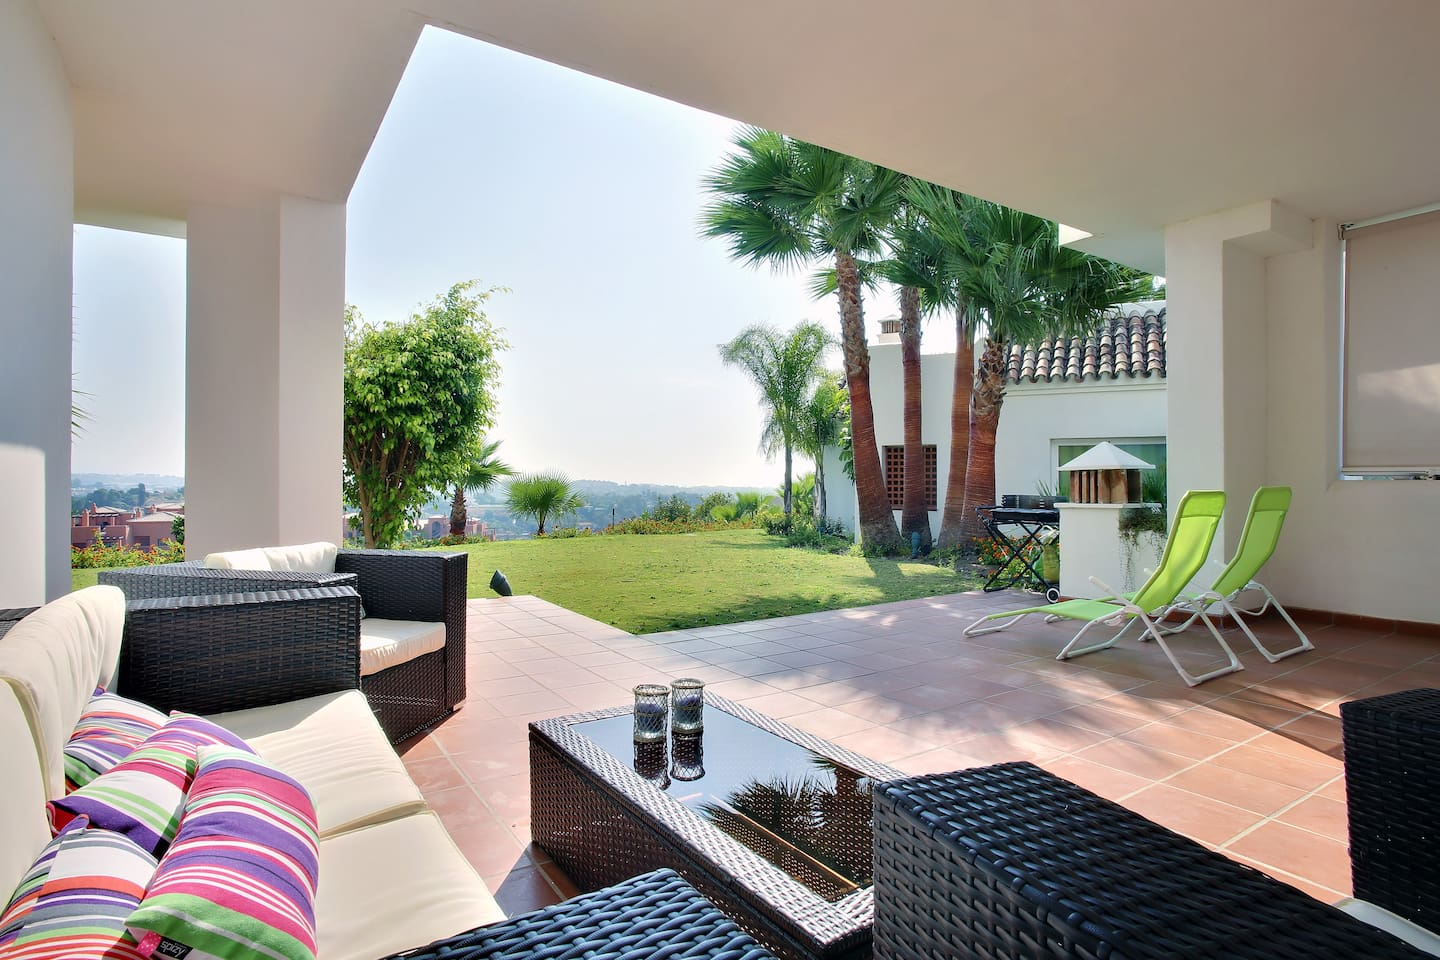 Terrace The appartm. is legally registretet as rentproperty under the reg.no VFT/MA/02459